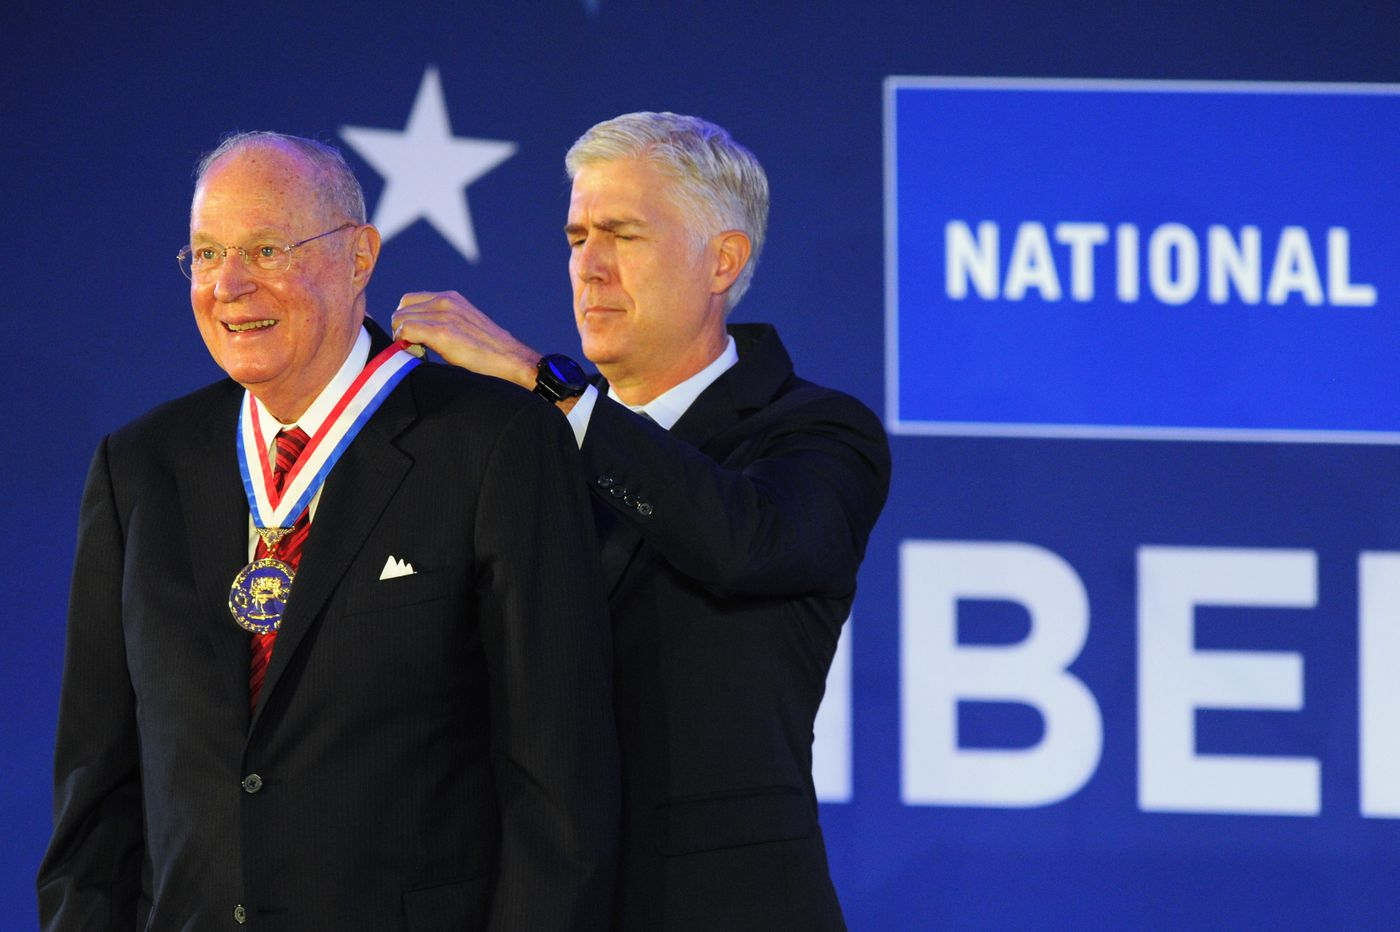 Liberty Medal awarded to former Supreme Court Justice Anthony Kennedy